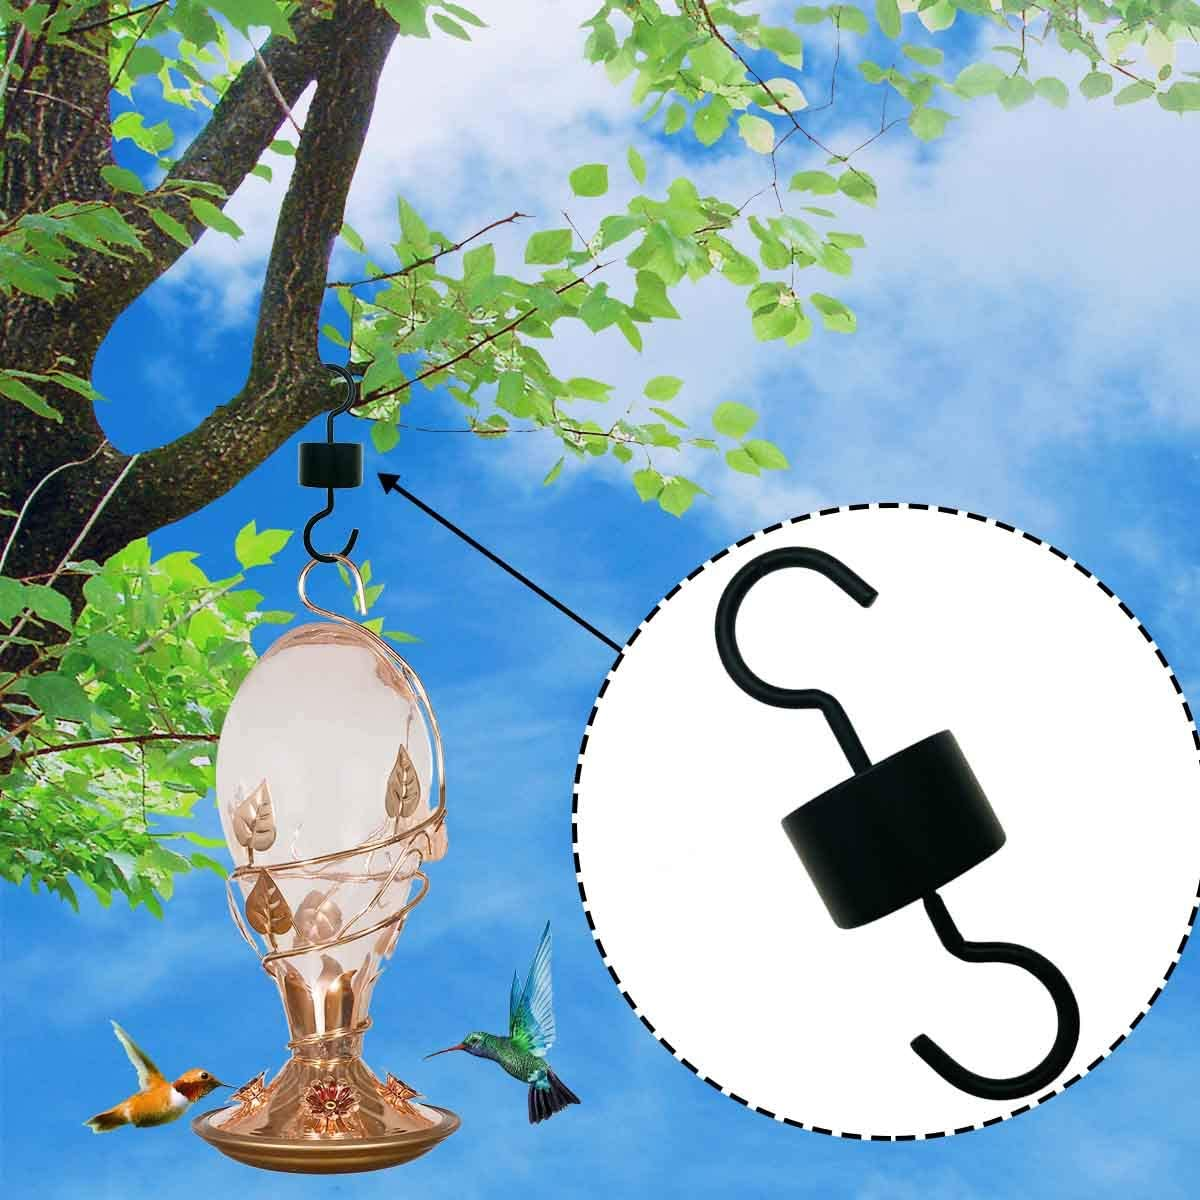 Ant Moat for Hummingbird Feeder 3 Ant Moats and 3 Brushes,Authentic Trap Gets Rid of Ants Fast /& 100/% Safe and All Natural for Your Nectar Feeder 3 Pack Hummingbird Feeders Accessory